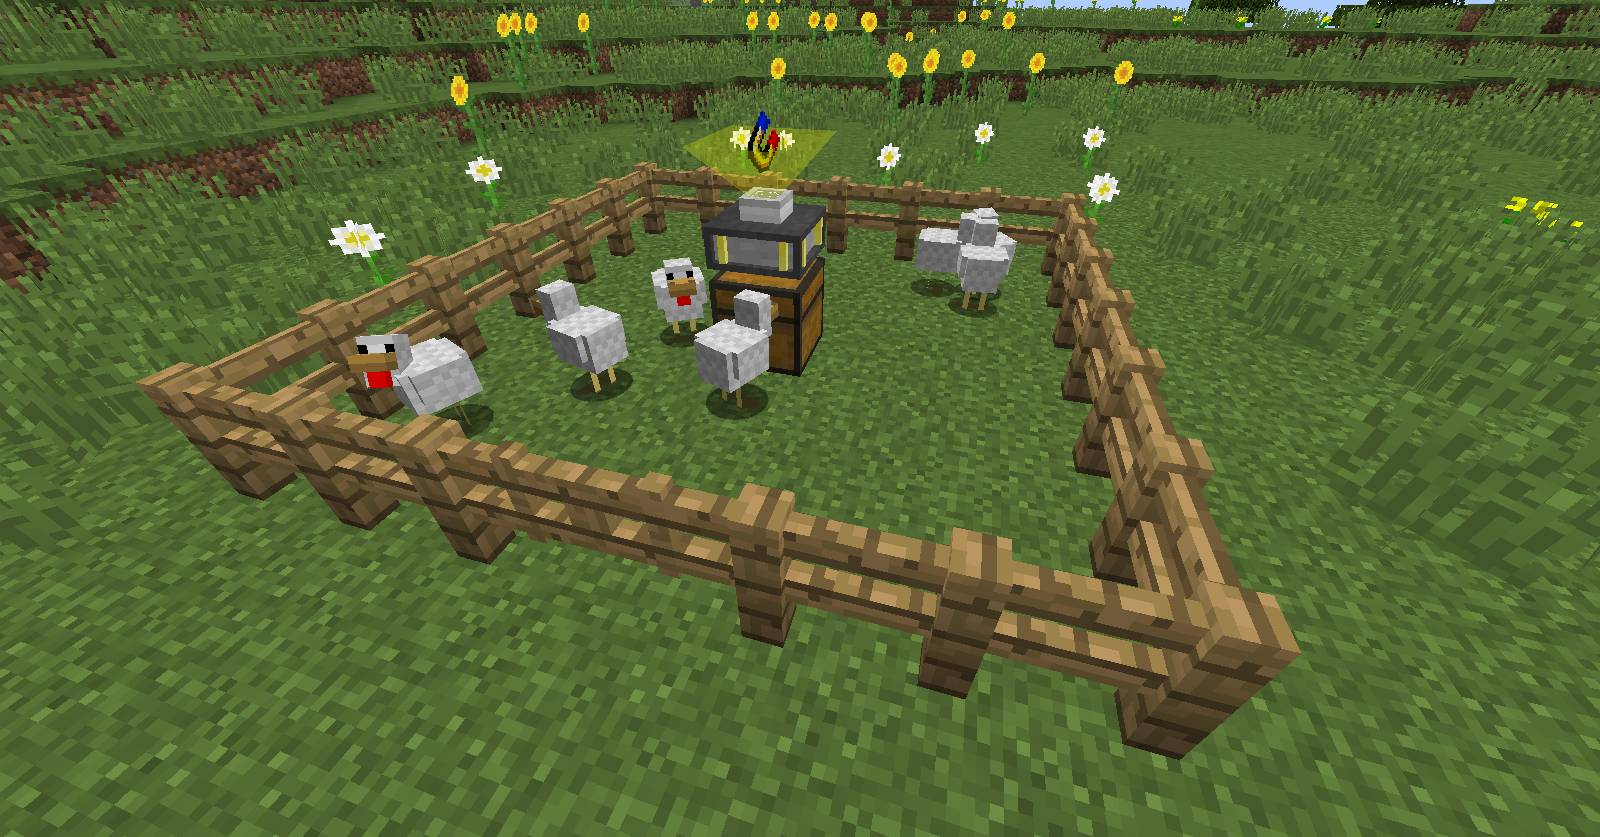 Tiered Magnets mod for minecraft 21